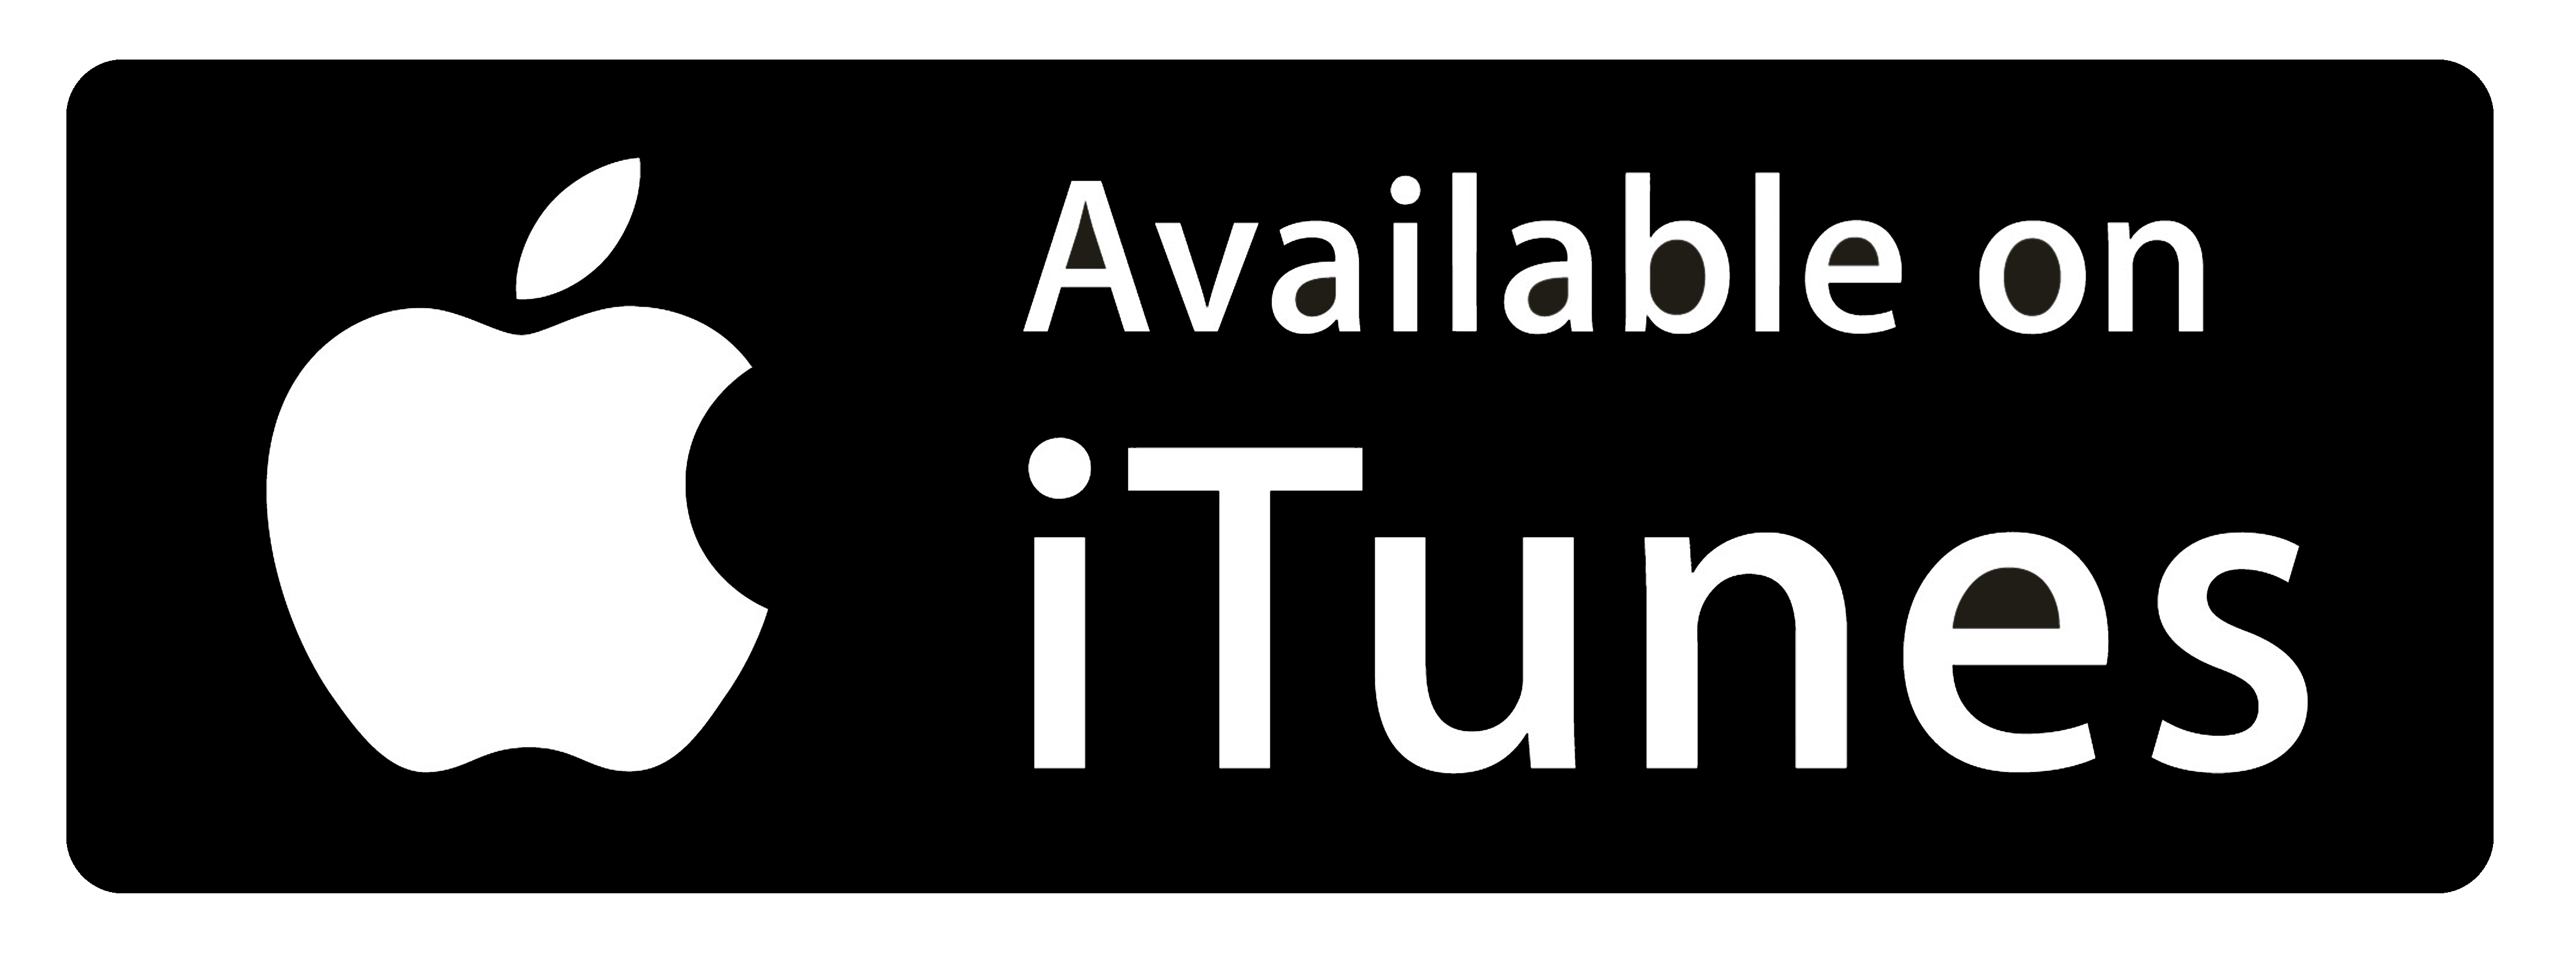 Available on iTunes England Logistics Podcast Network